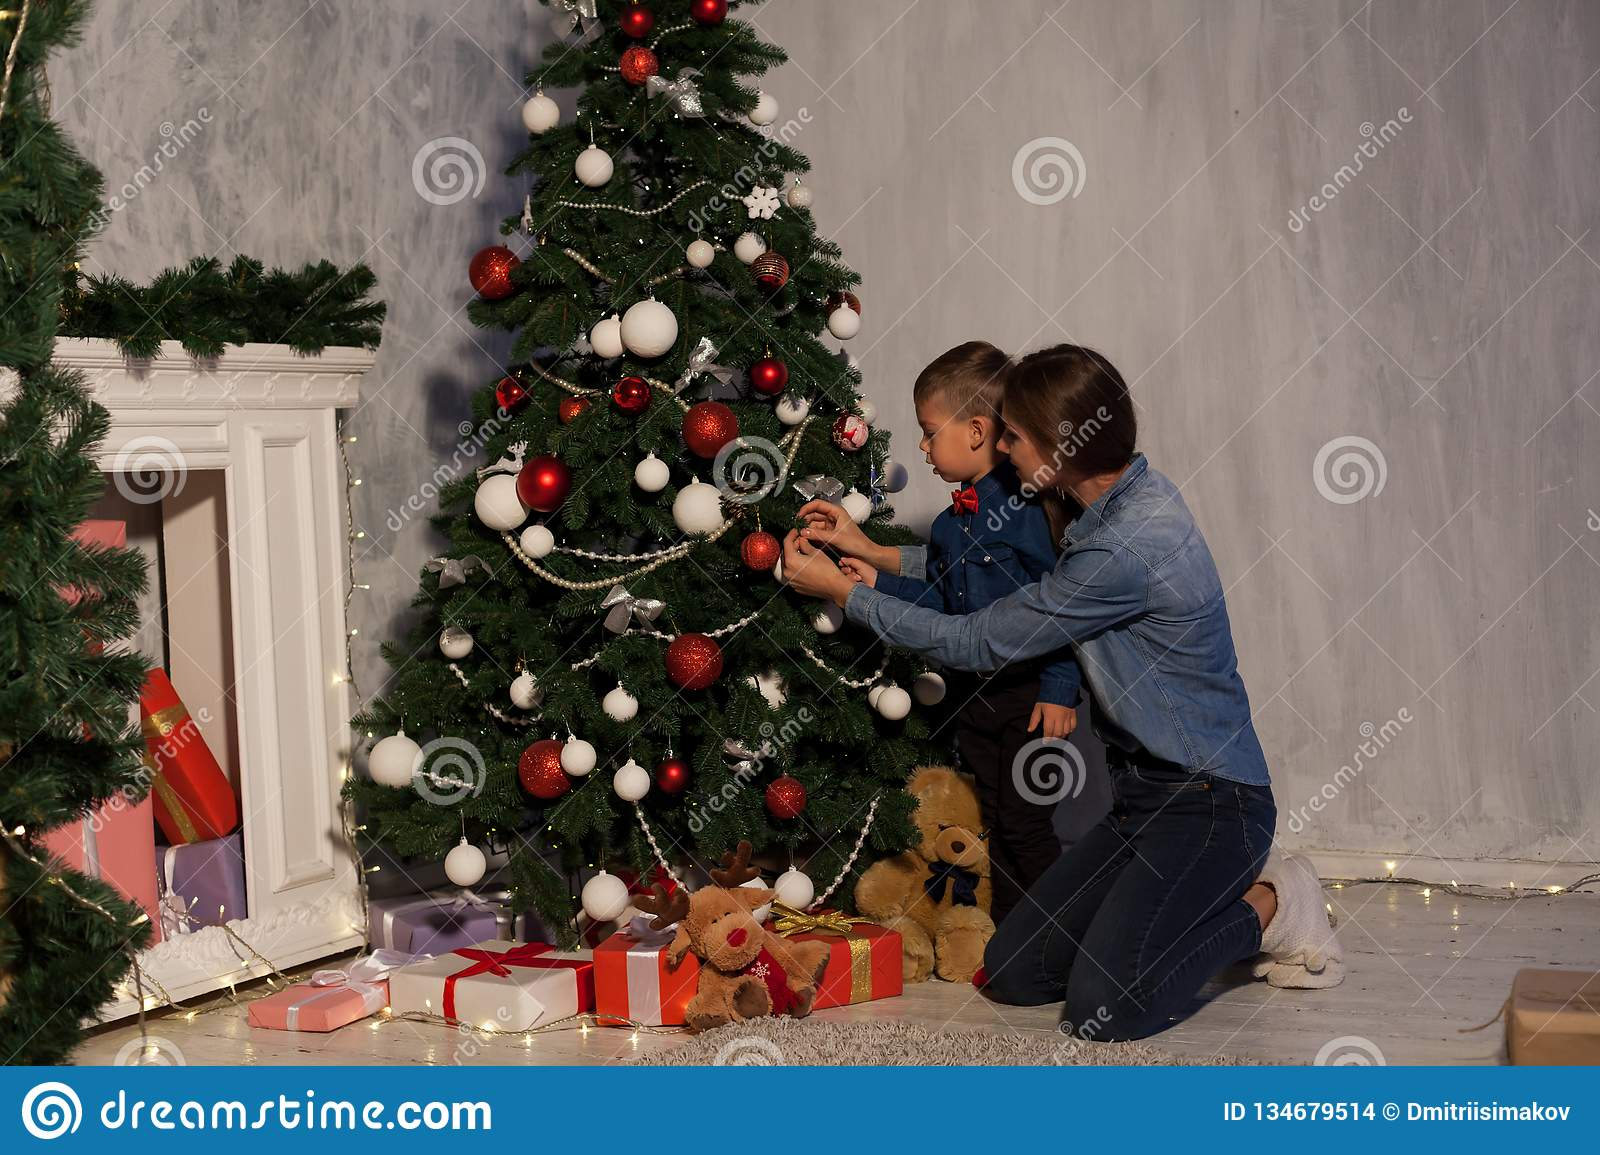 Christmas Gifts For Mom From Son.Mom With Son Adorn The Christmas Tree Lights Christmas New